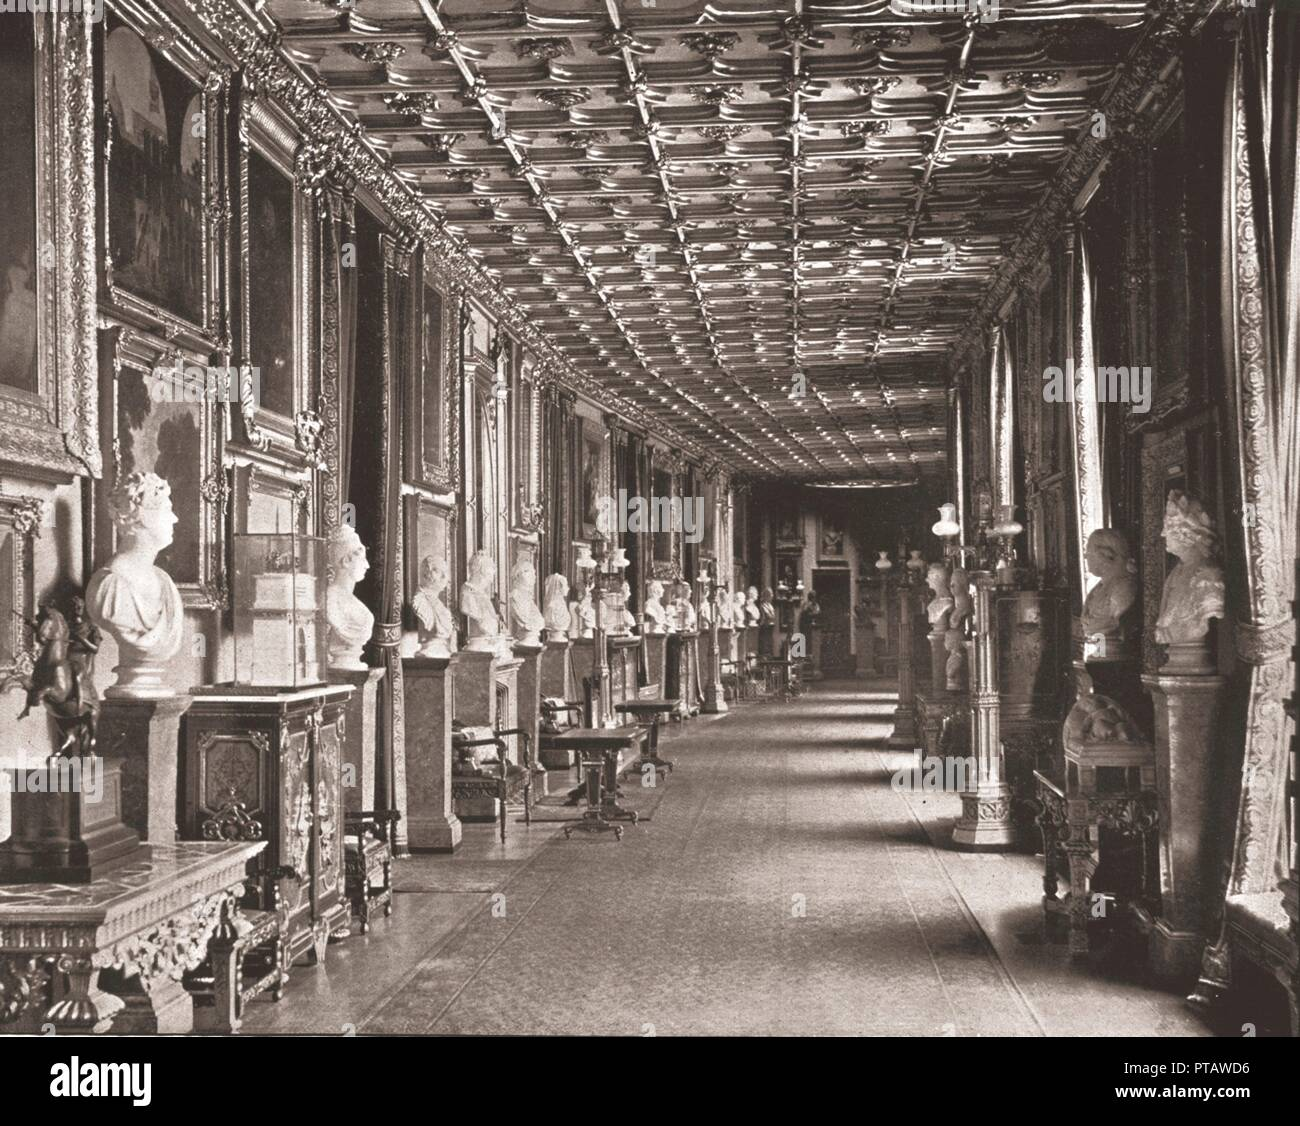 The East Corridor, Windsor Castle, Berkshire, 1894. View inside the royal residence at Windsor, showing sculpted busts lining the walls, commemorating British monarchs, historical personages, friends and contemporaries of George IV. From Beautiful Britain; views of our stately homes. [The Werner Company of Chicago, 1894] - Stock Image